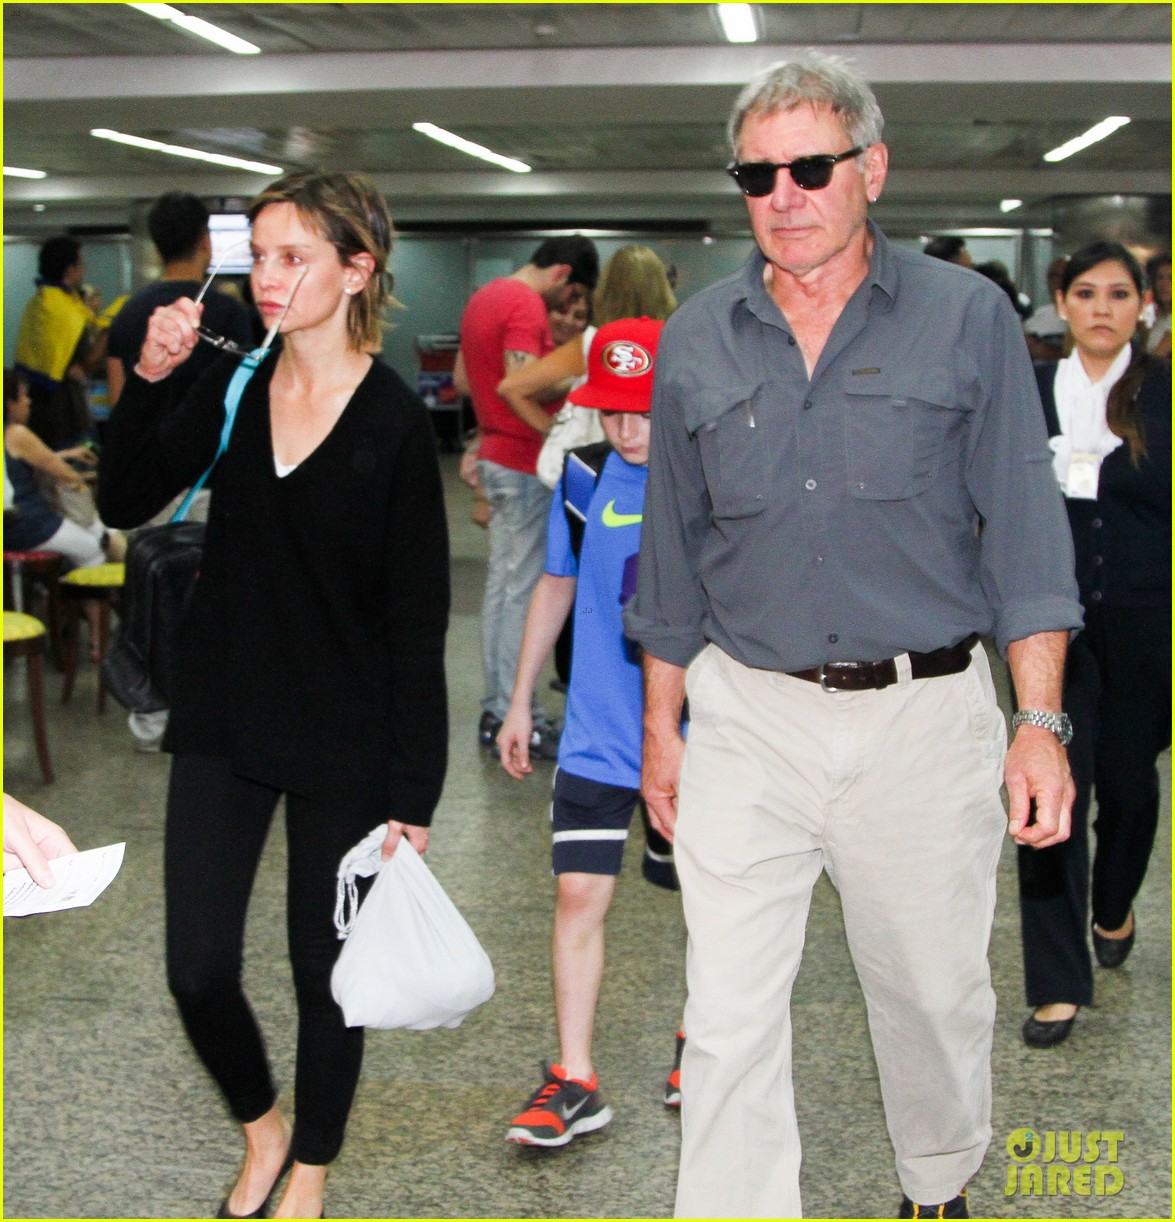 harrison ford family vacation after star wars 7 news 102813657